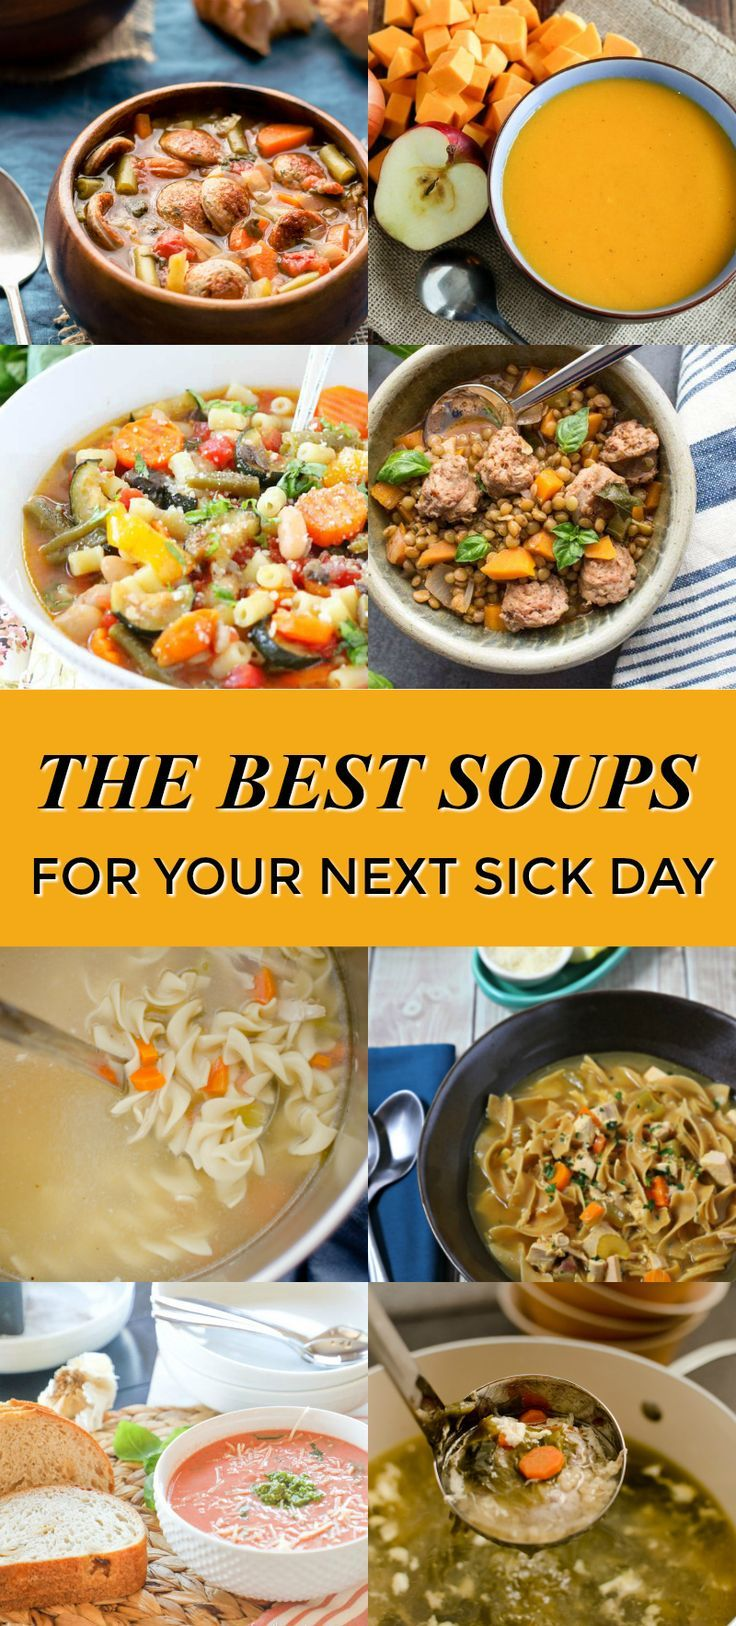 The Best Soups for Your Next Sick Day